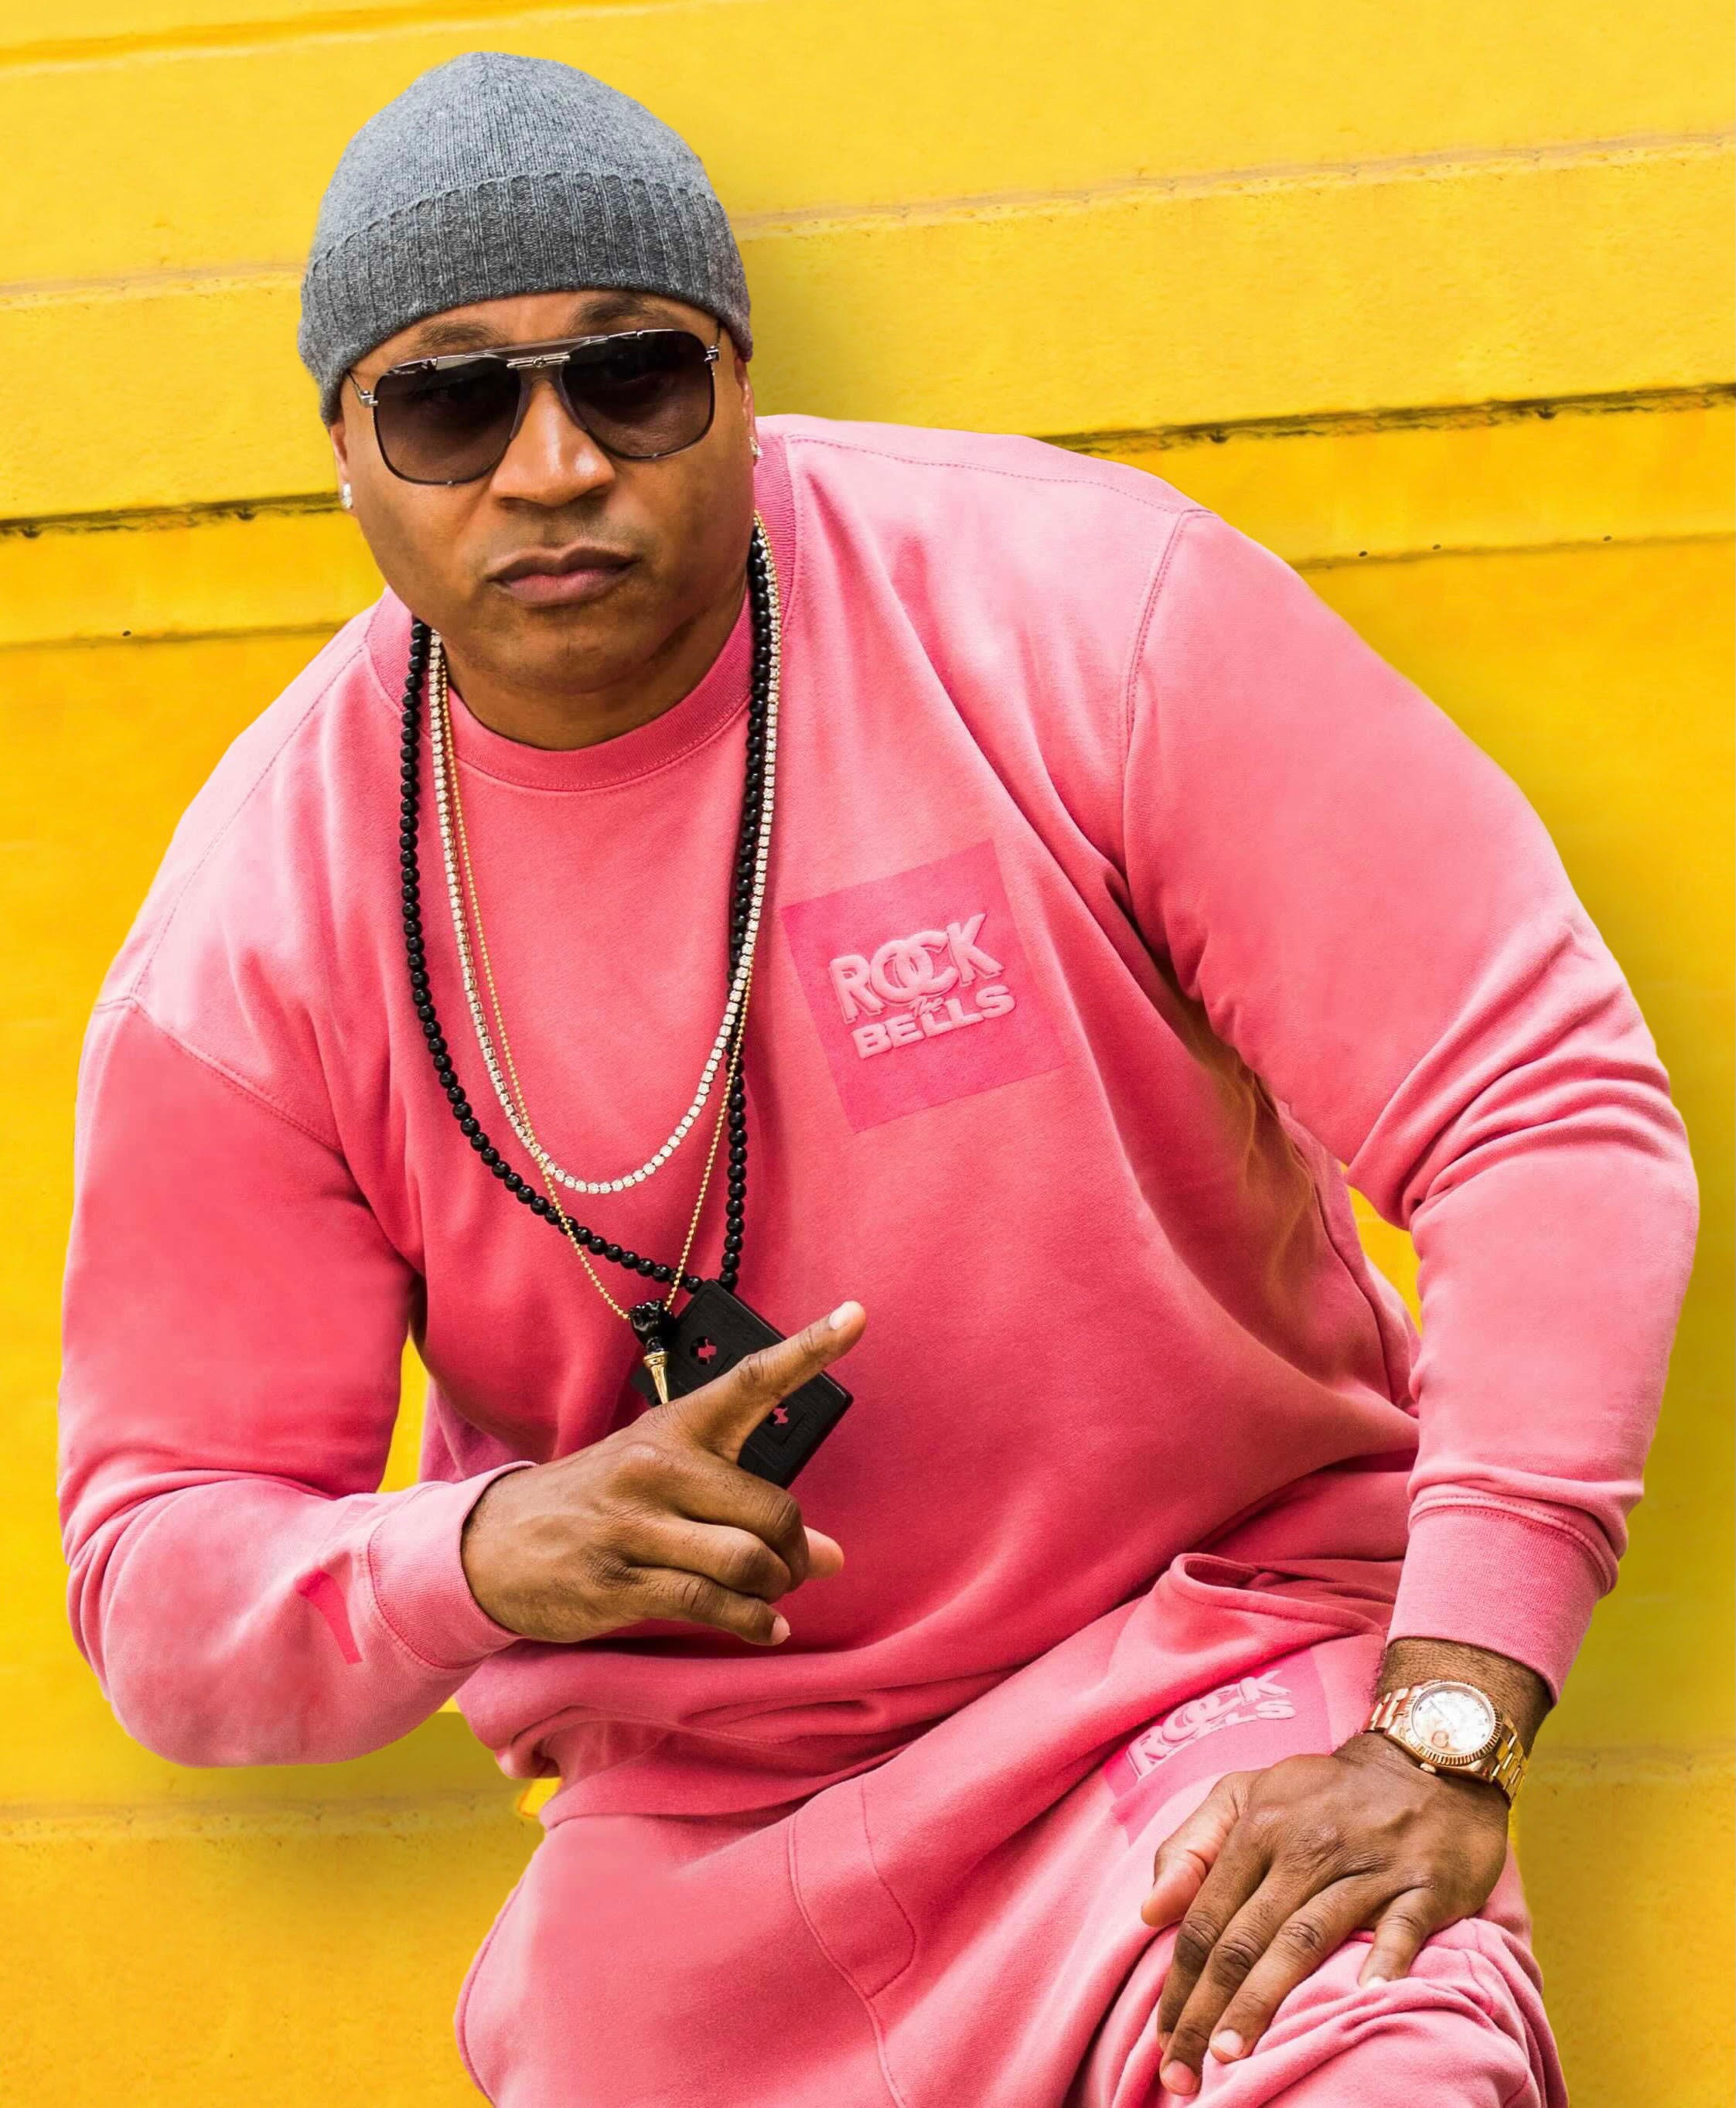 LL Cool J in a look from his Hip-Hop is Essential collection.